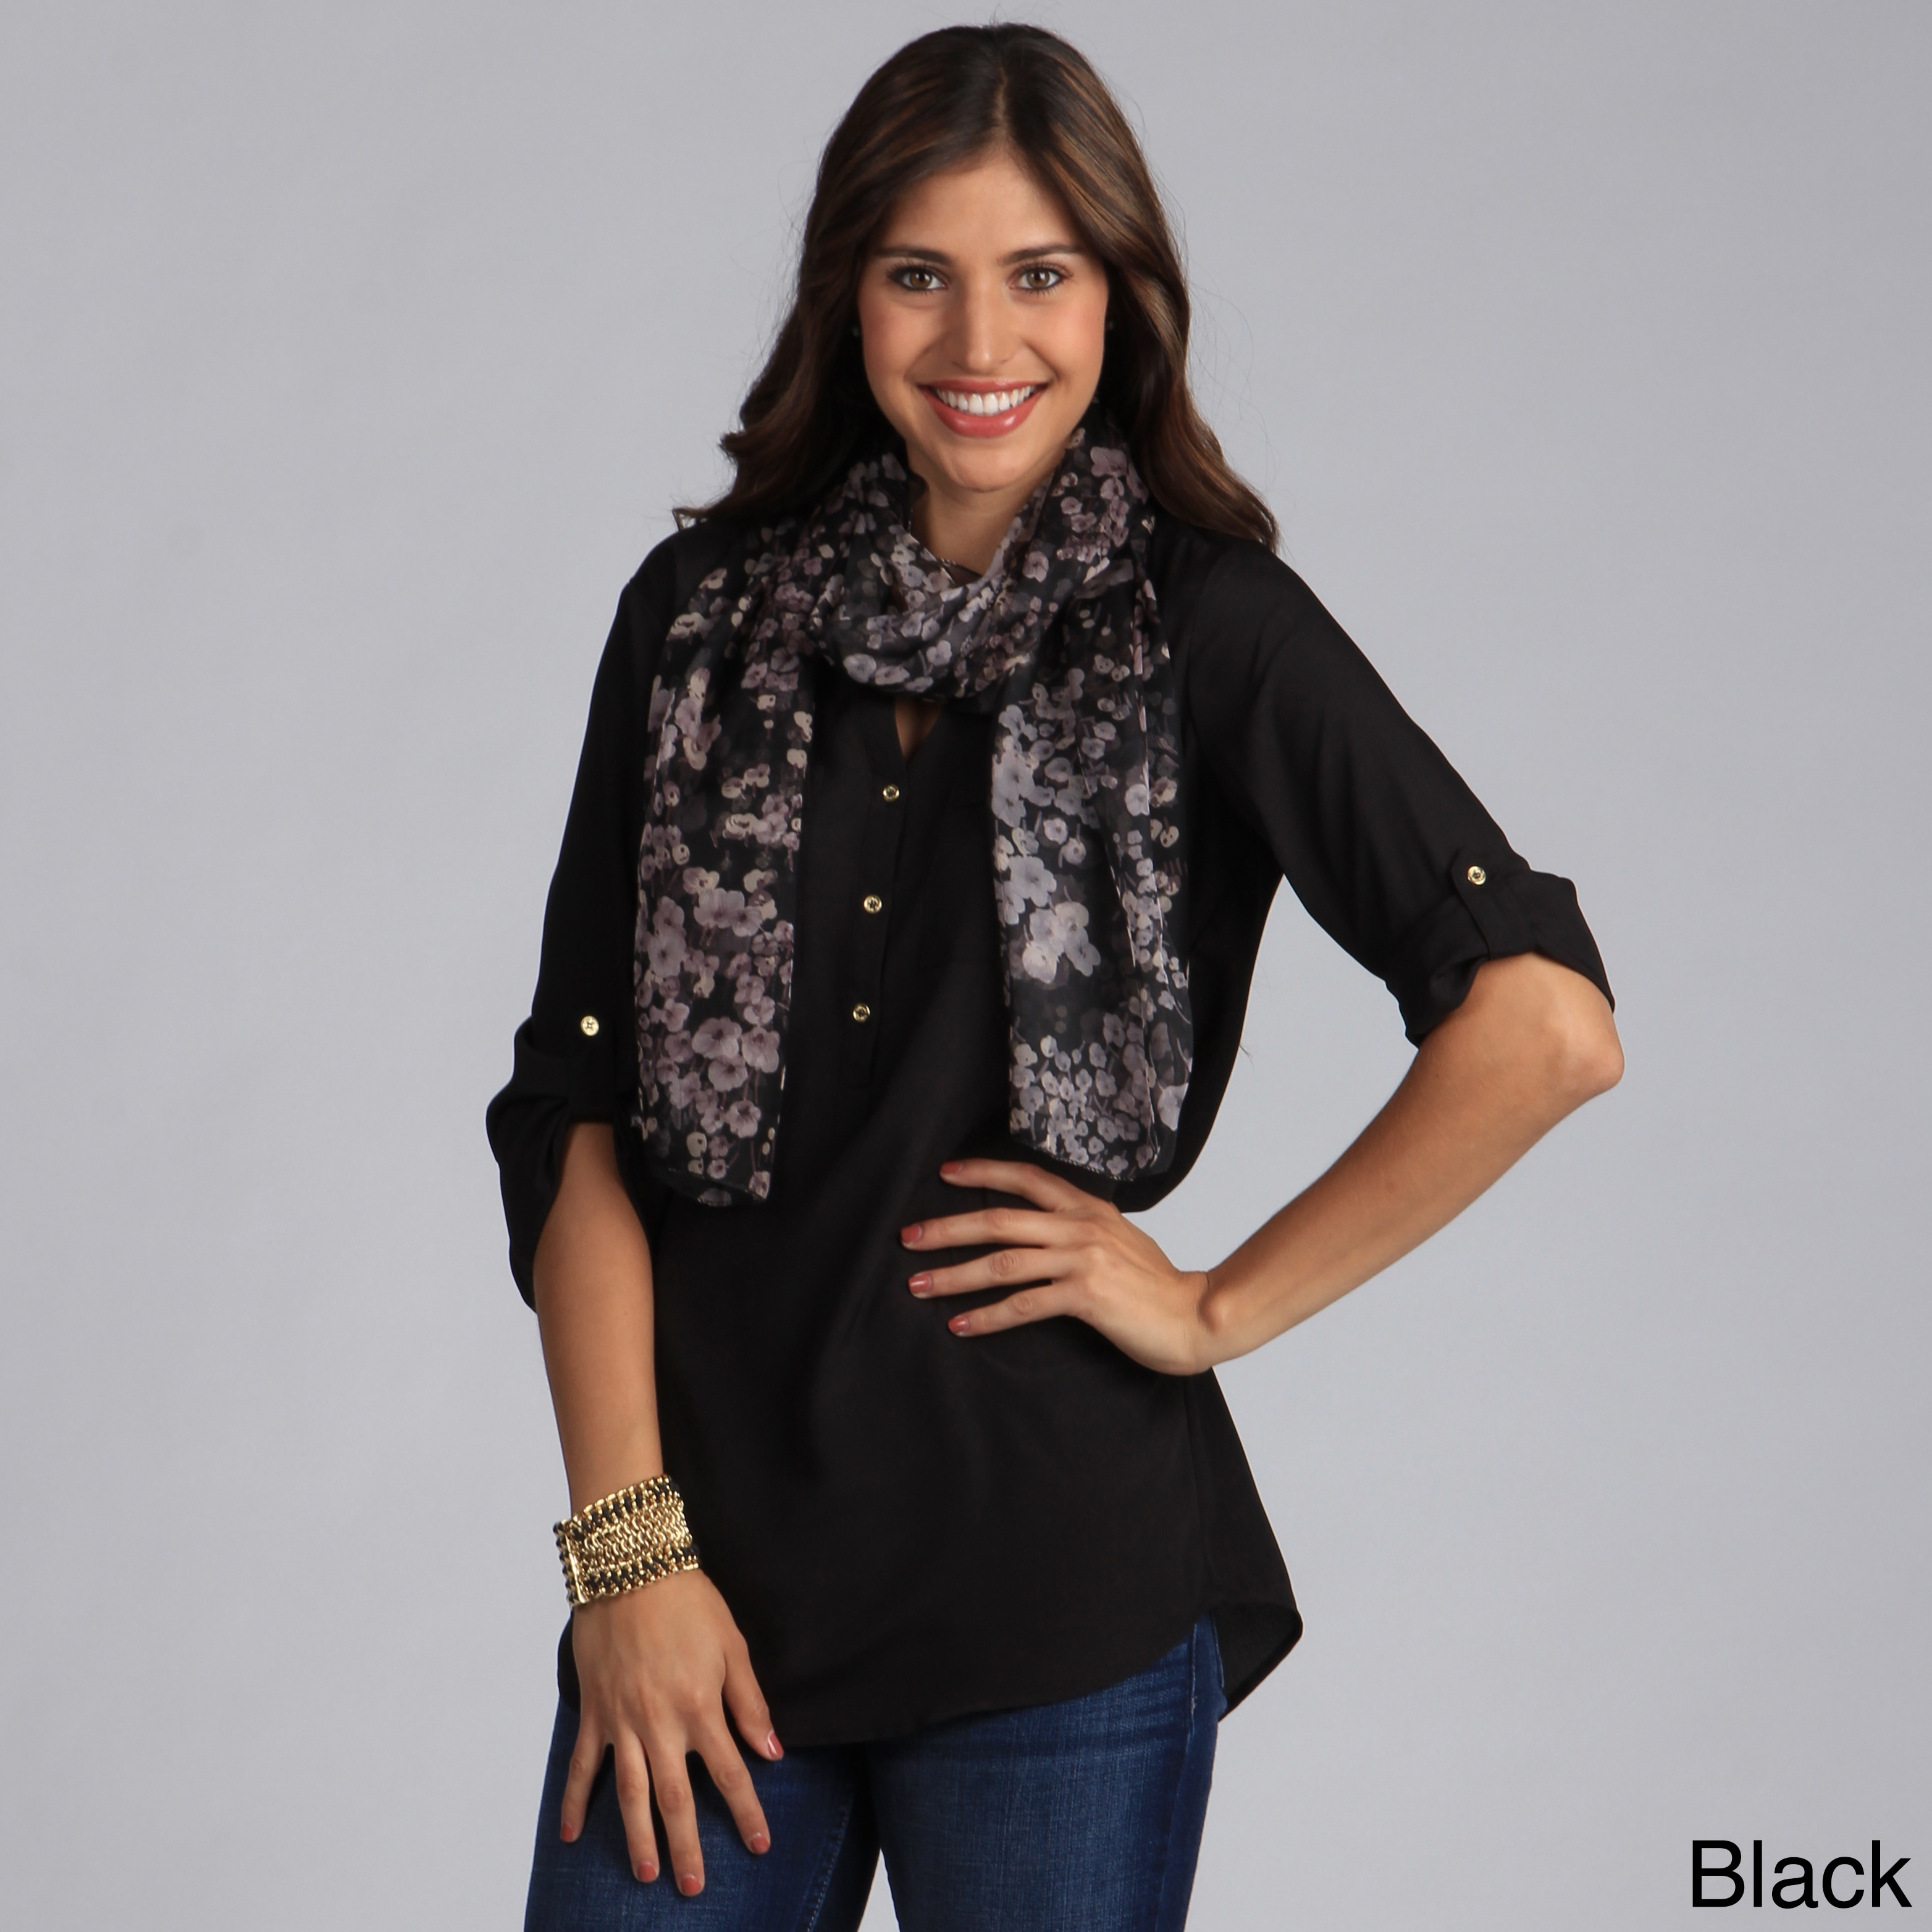 Saro Women's Floral Design Scarf (Black), Size One Size F...